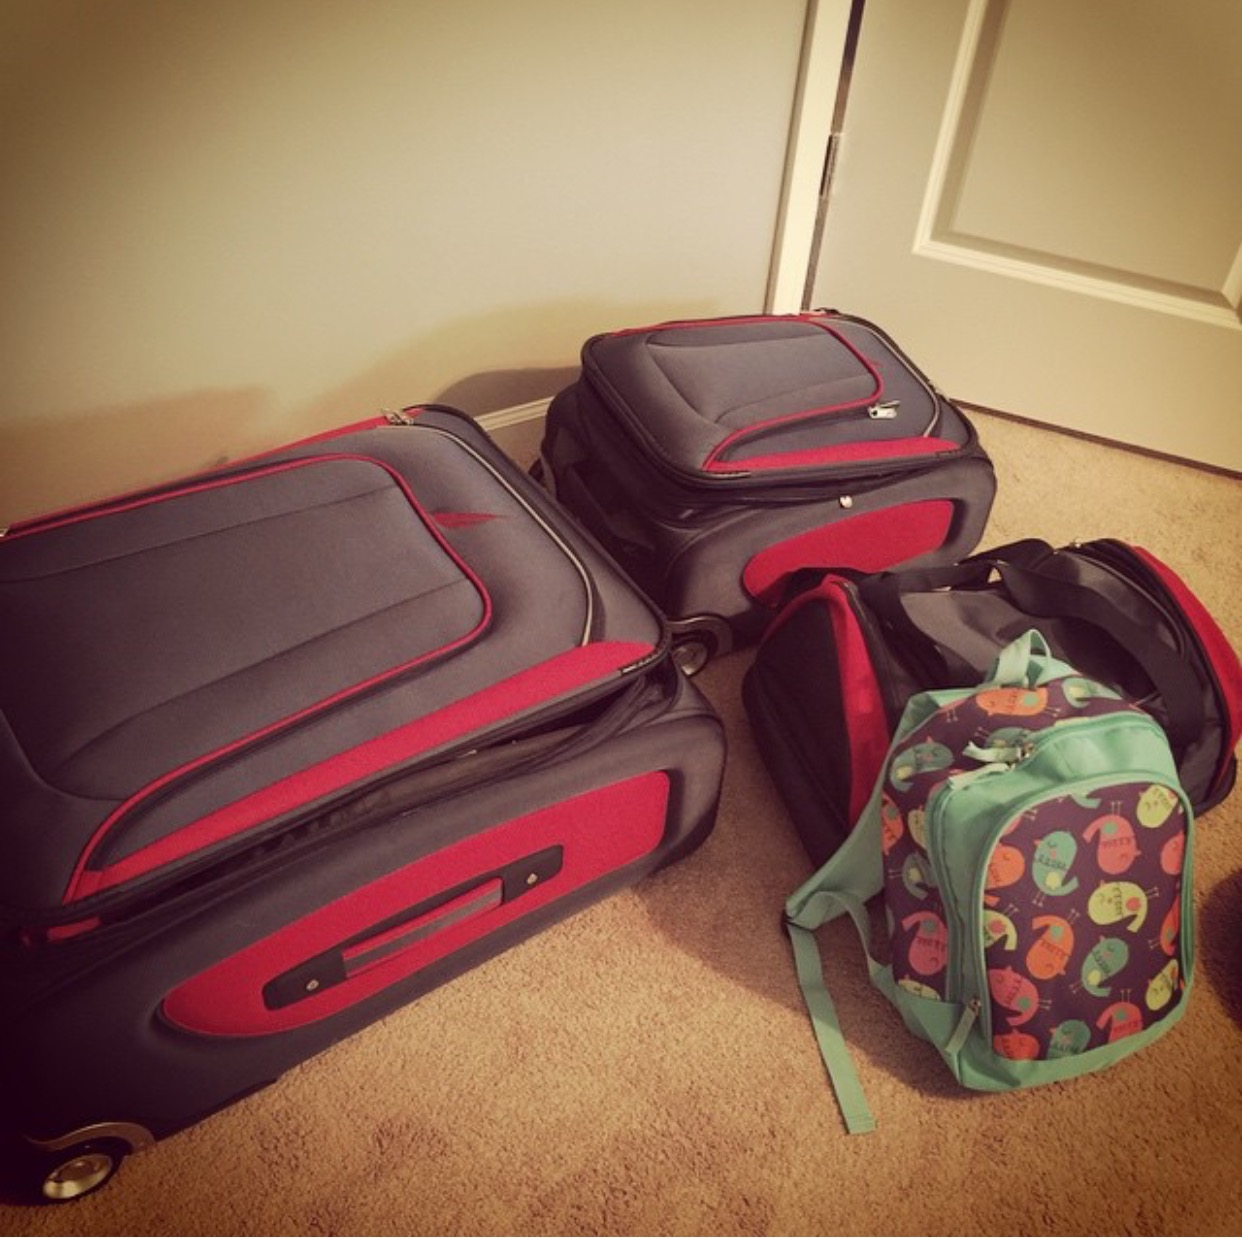 This is all we packed for a two week international trip for three people.